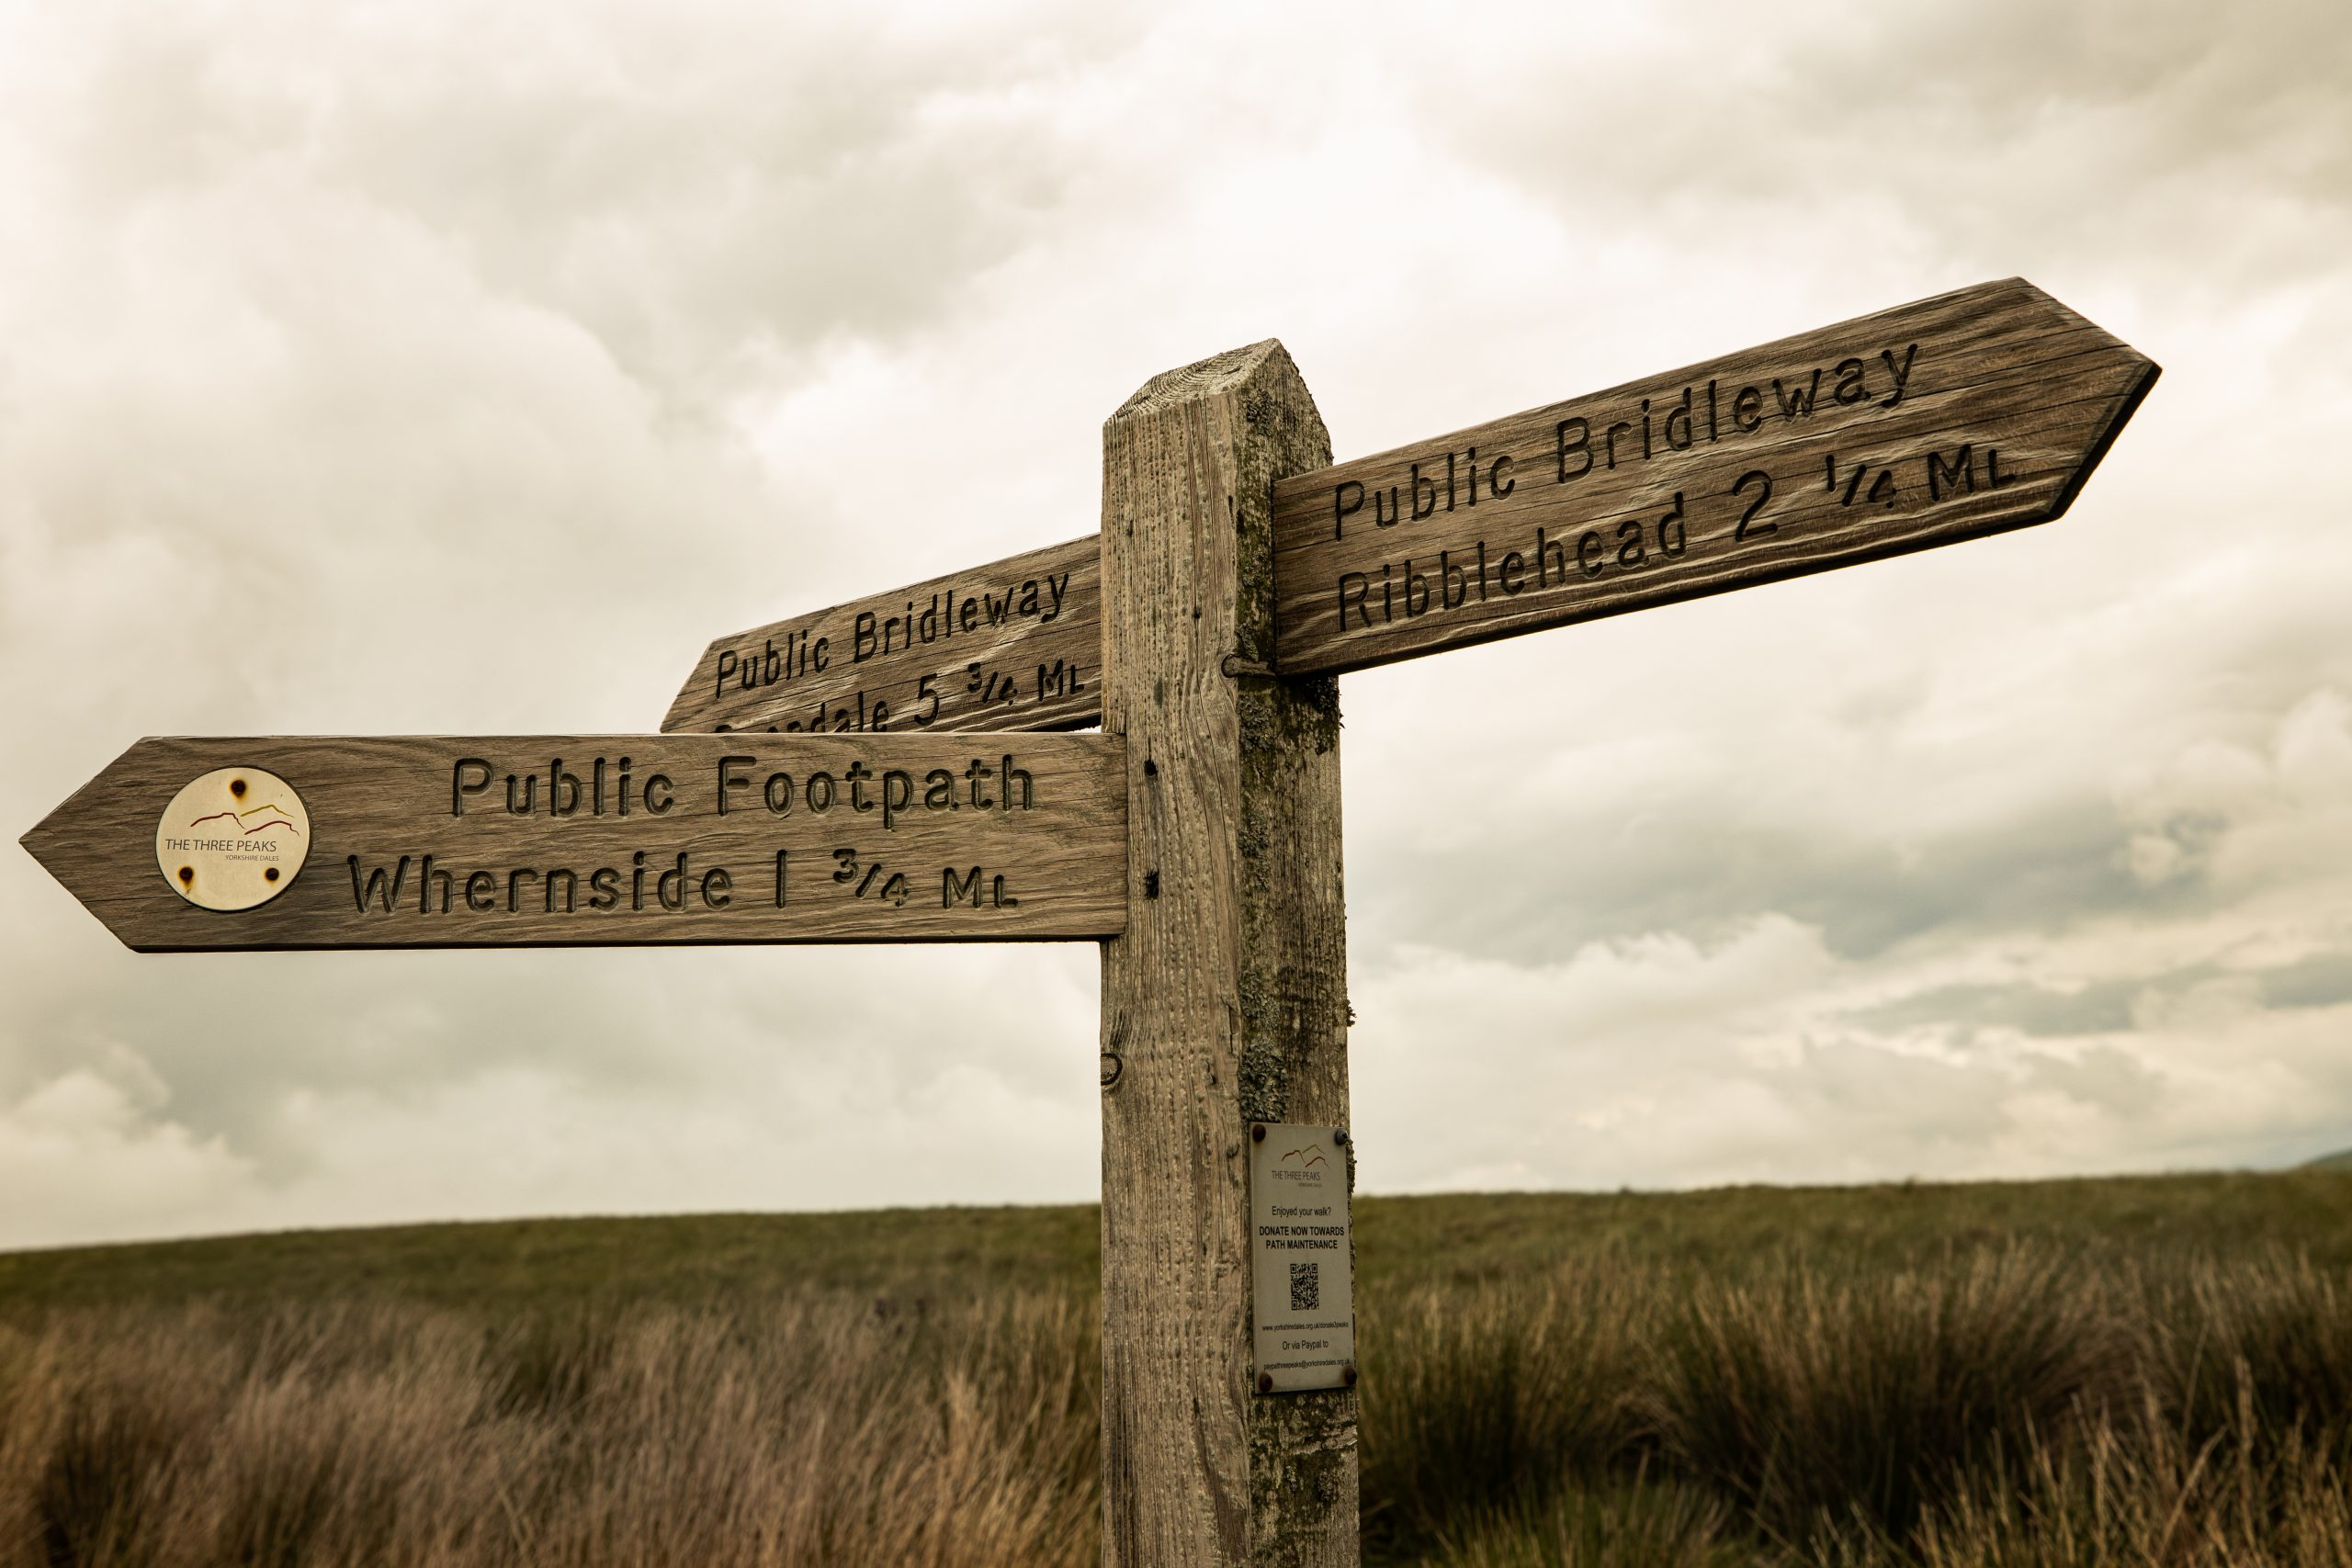 A wooden signpost indicating three different paths - one towards Ribblehead, one to Whernside and one to Dentdale, while out on a guided walk in the Yorkshire Dales